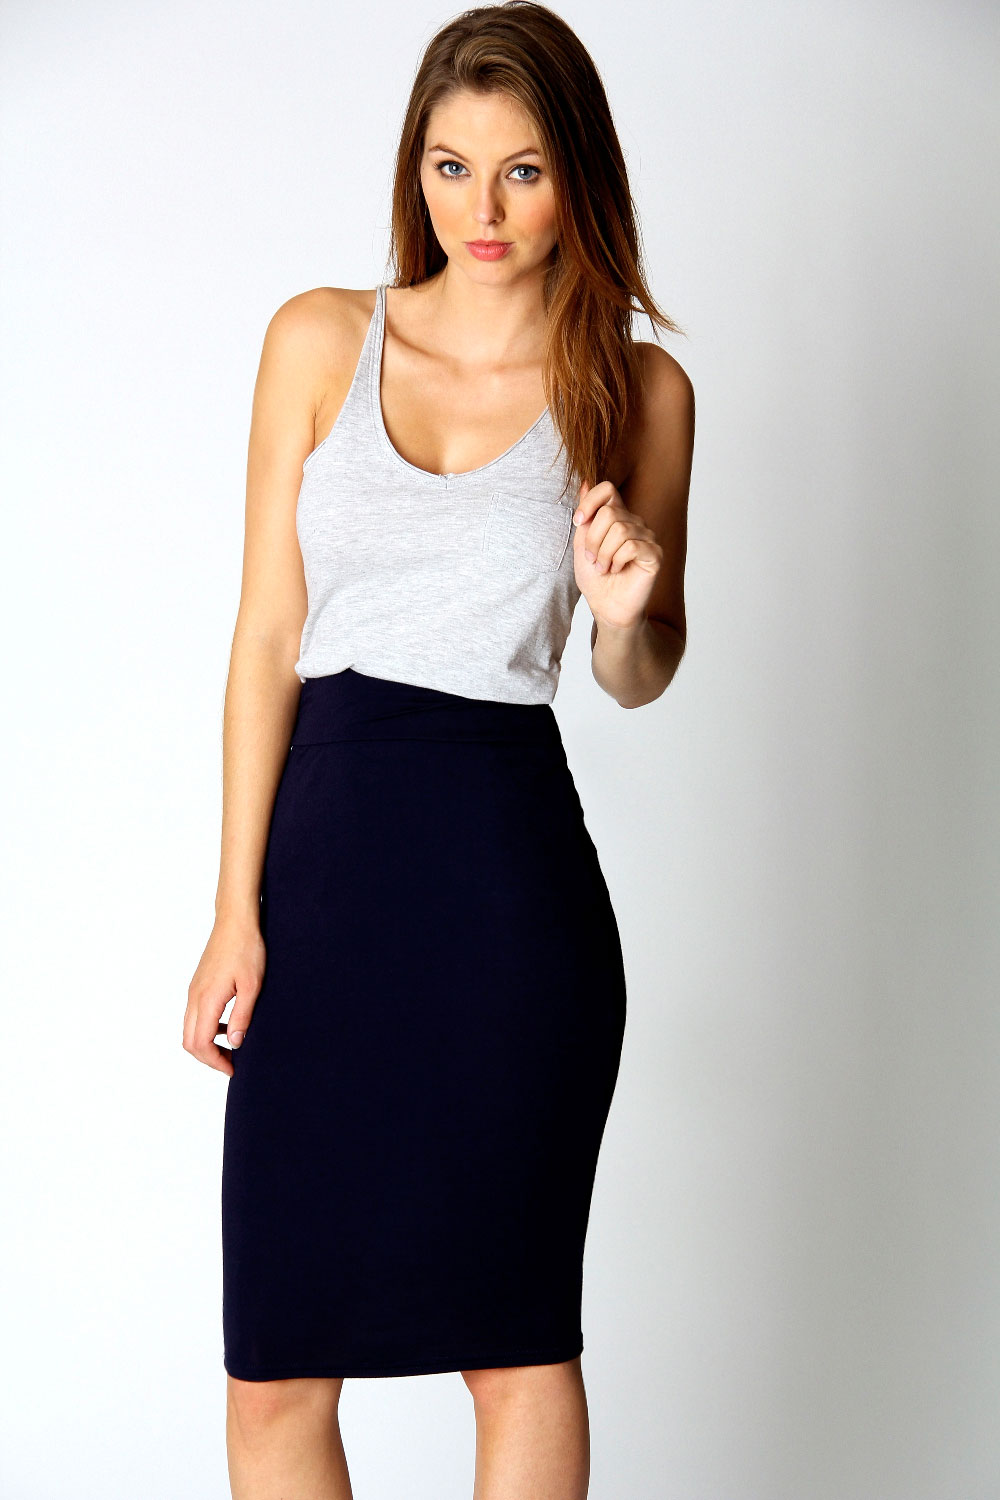 Outfit ideas - Show off your figure with tube skirts